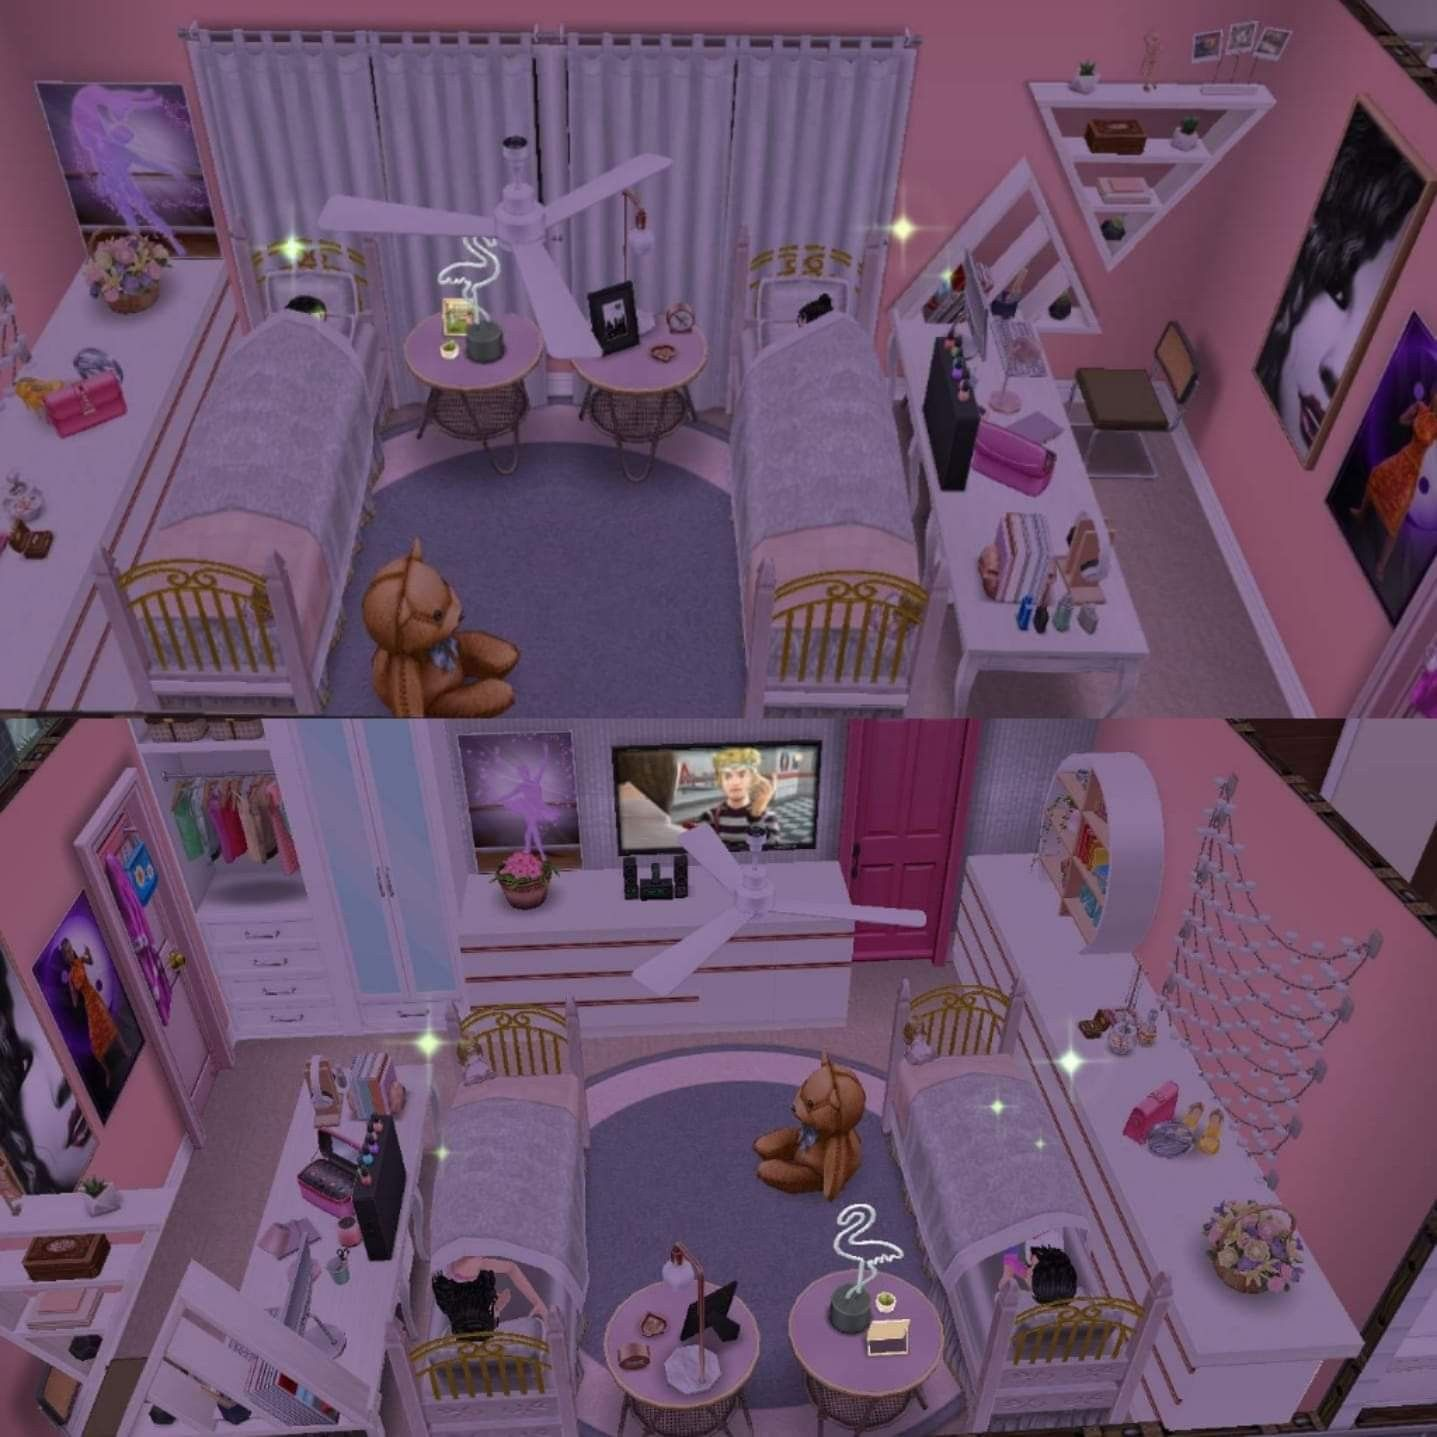 Pin By Kimberly101guides On The Sims Freeplay Decoration Ideas Sims House Sims Free Play Sims 4 House Design